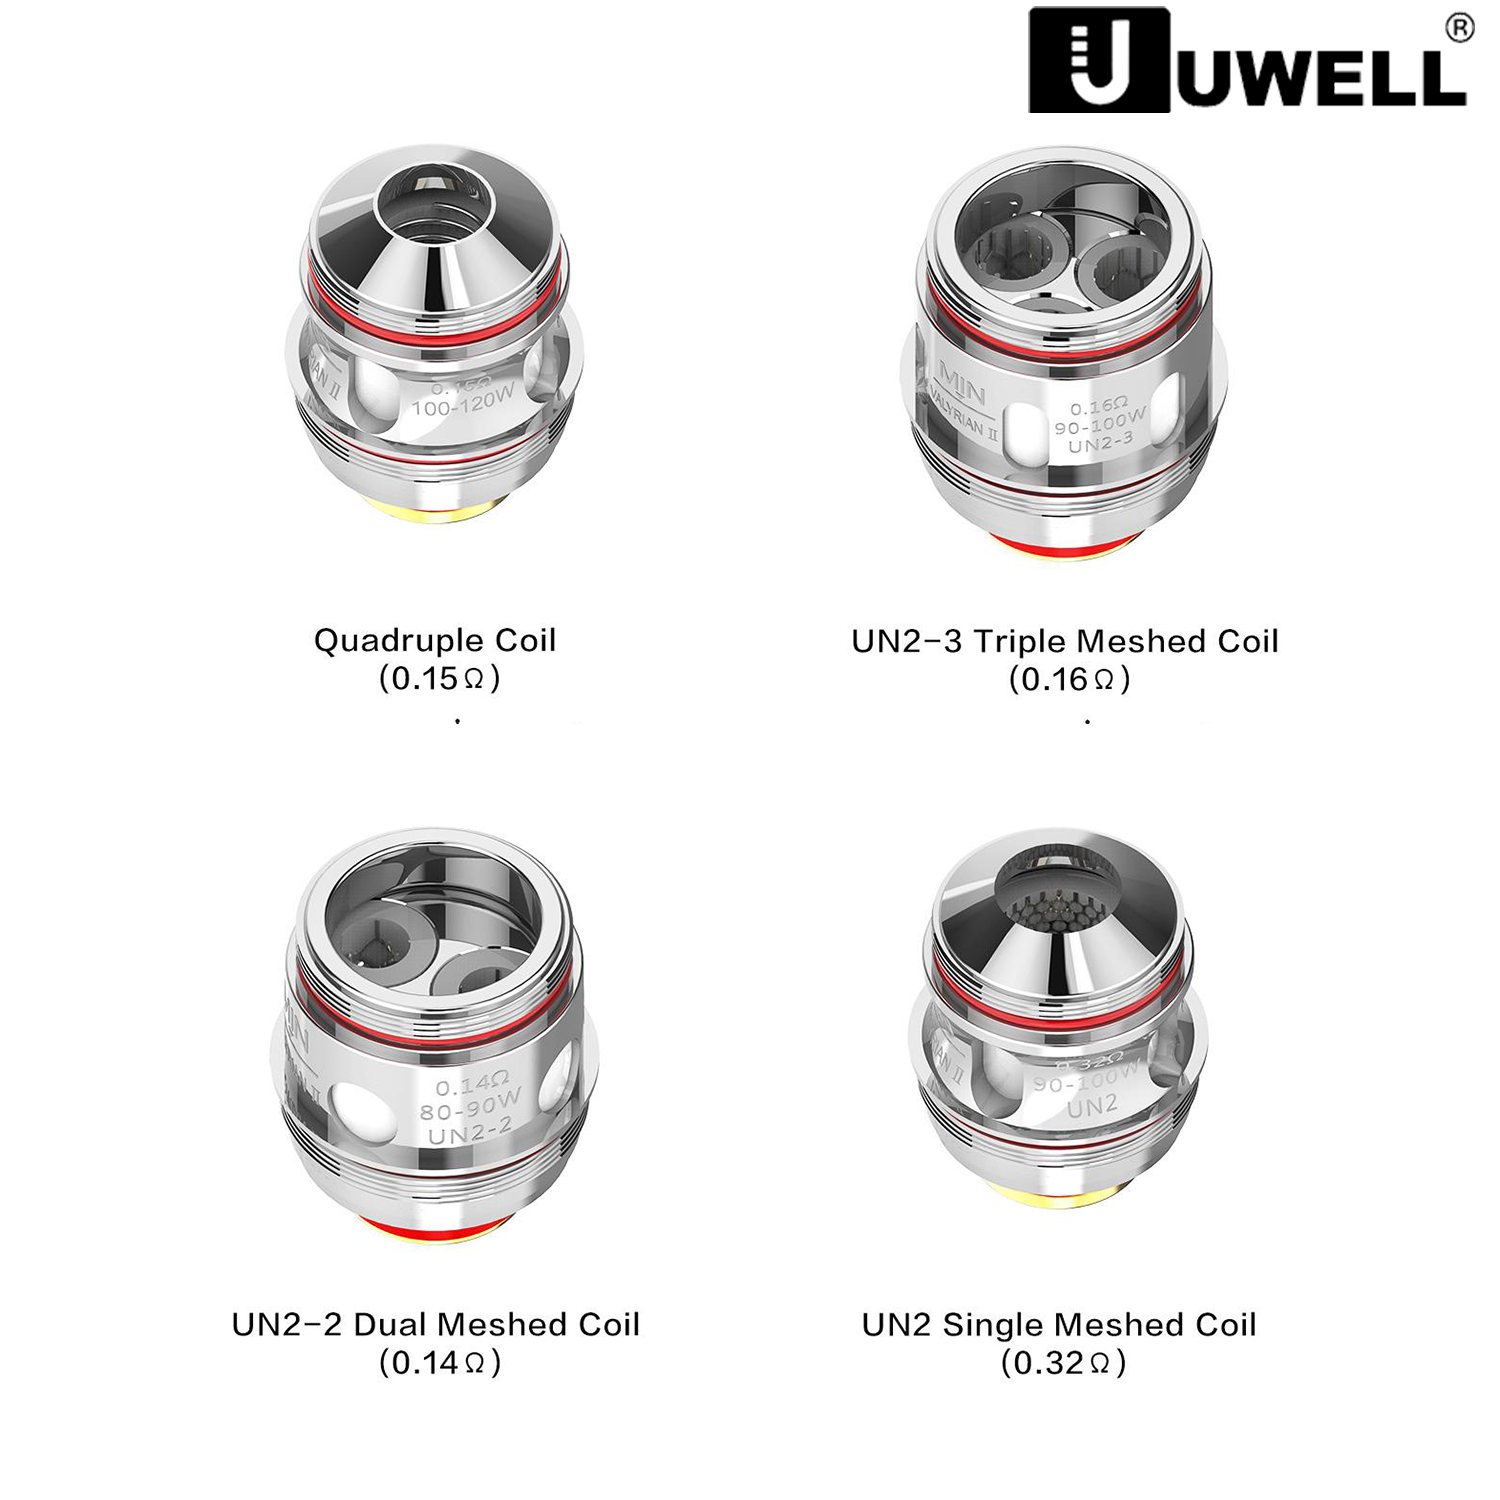 UWELL VALYRIAN 2 REPLACEMENT COIL (Price Per Coil)